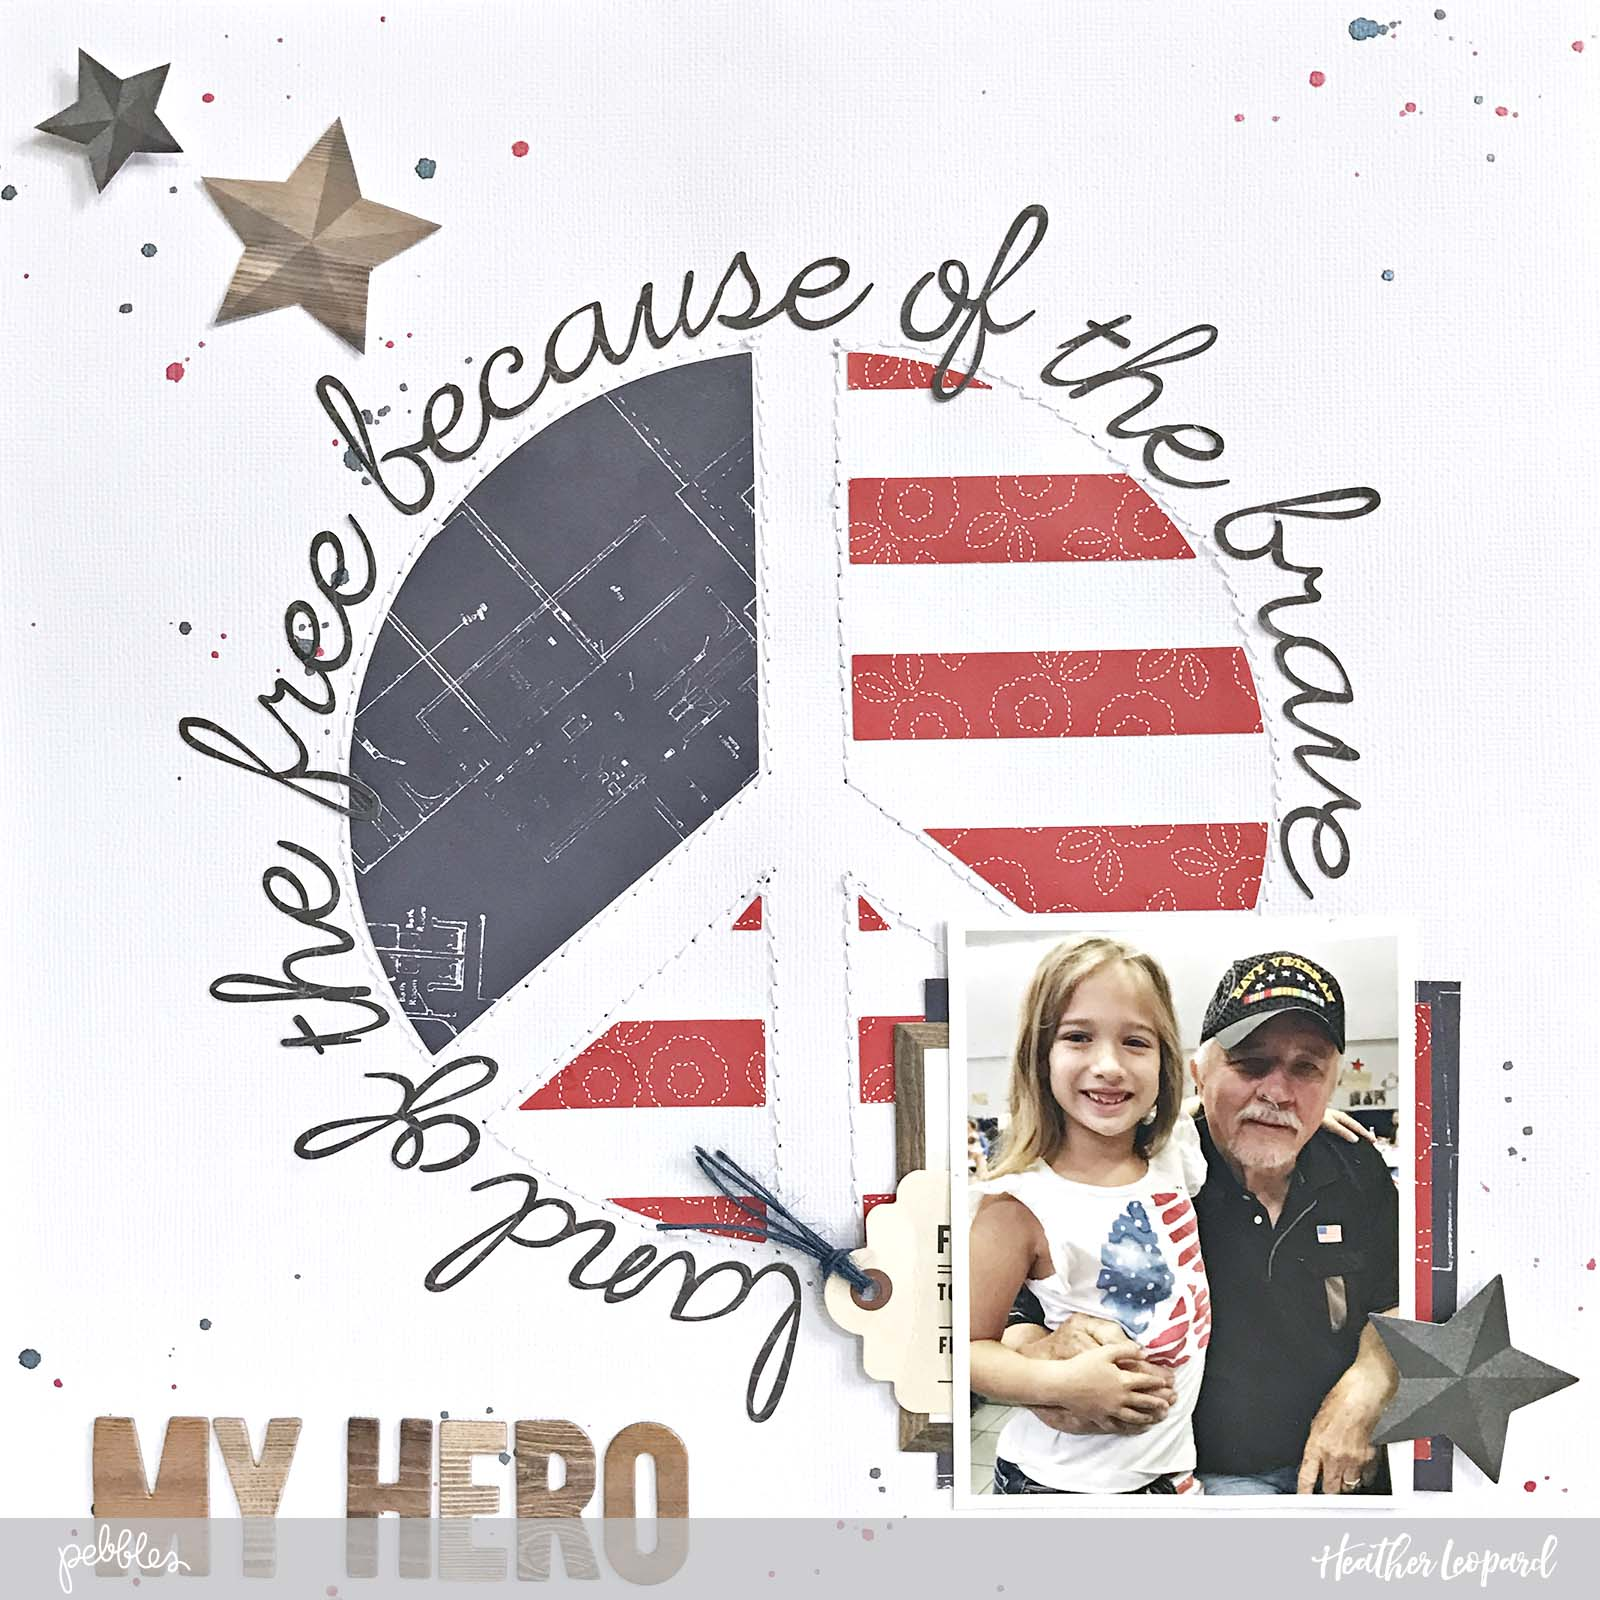 Patriotic layout by @heatherleopard using @pebblesinc @jenhadfield #SimpleLife collection #scrapbooking #scrapbook #patriotic #peaceflag #peace